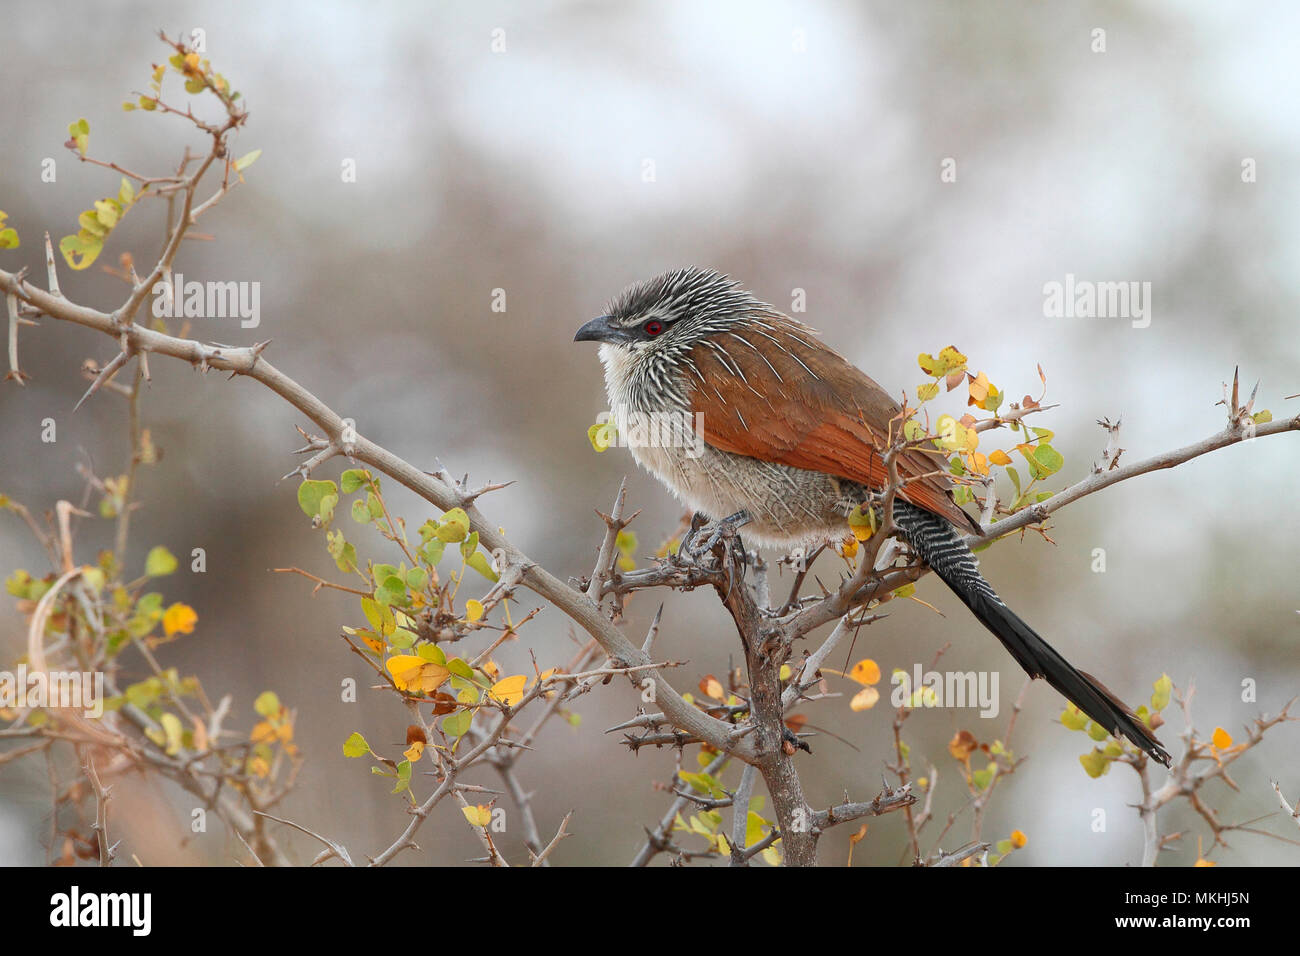 White-browed Coucal (Centropus superciliosus) adult perched in the morning on a thorny observing, North Tanzania - Stock Image